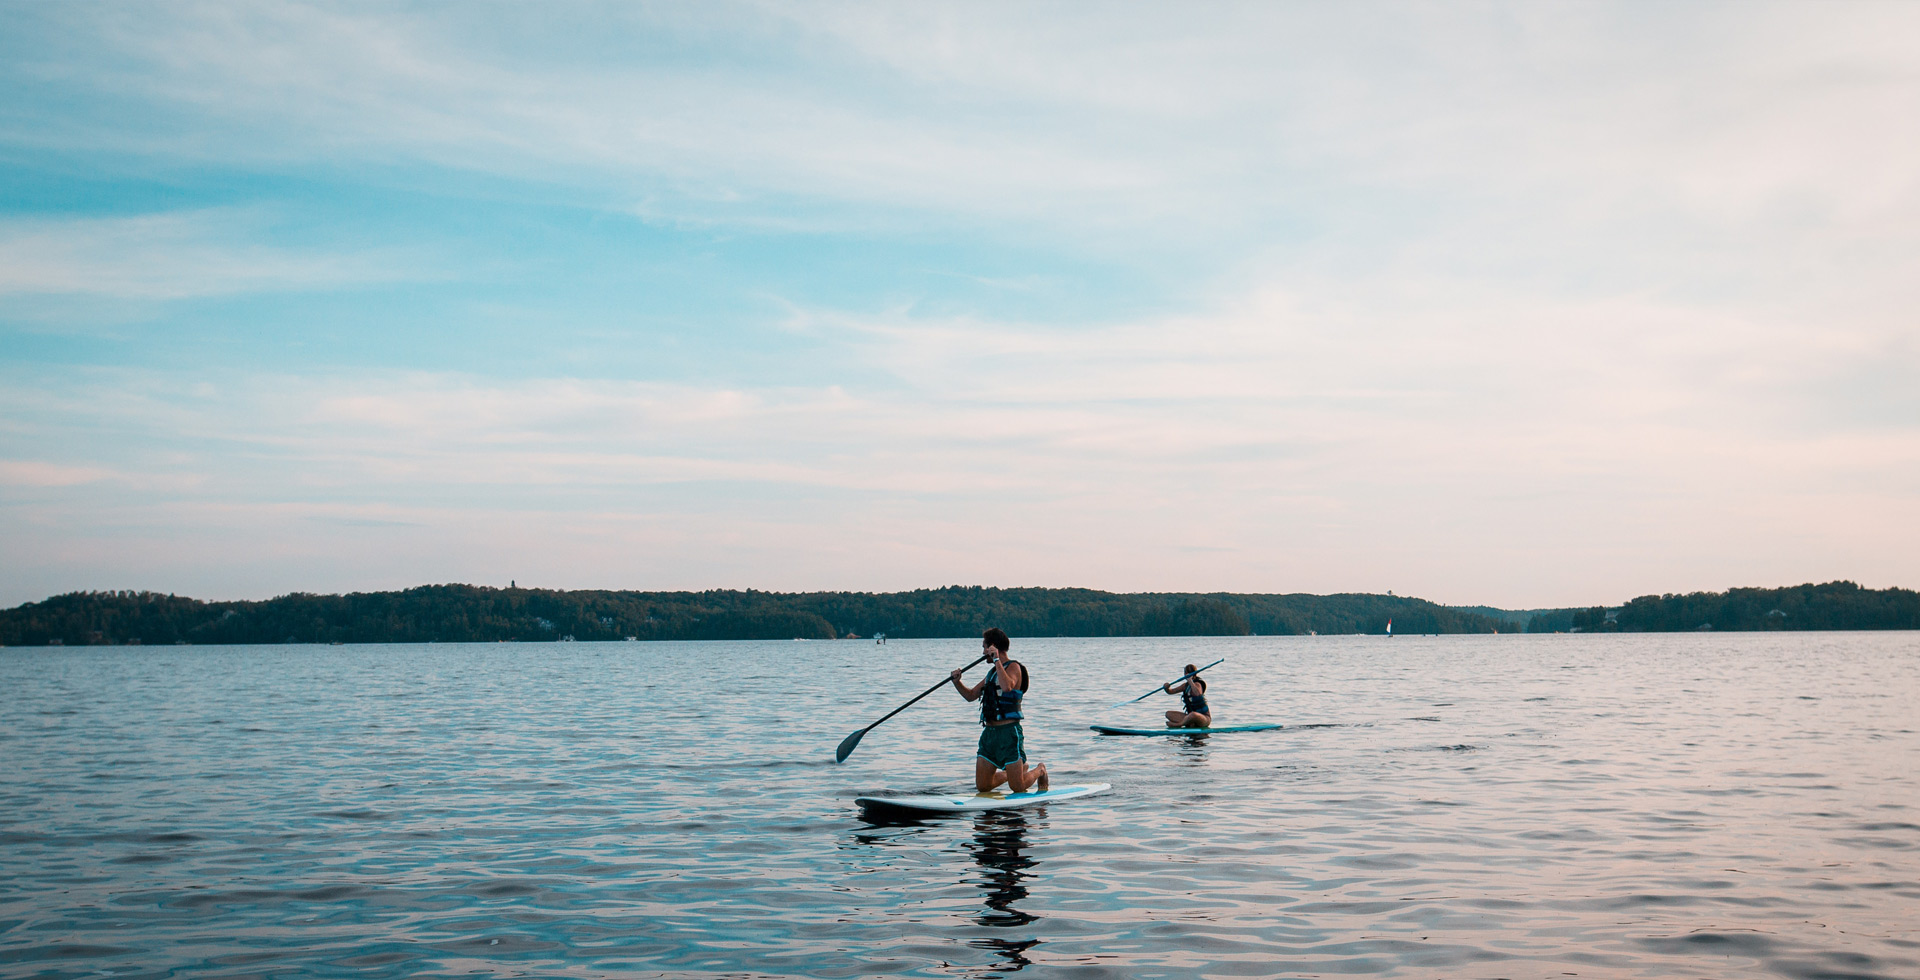 friends paddleboarding at dusk on a lake